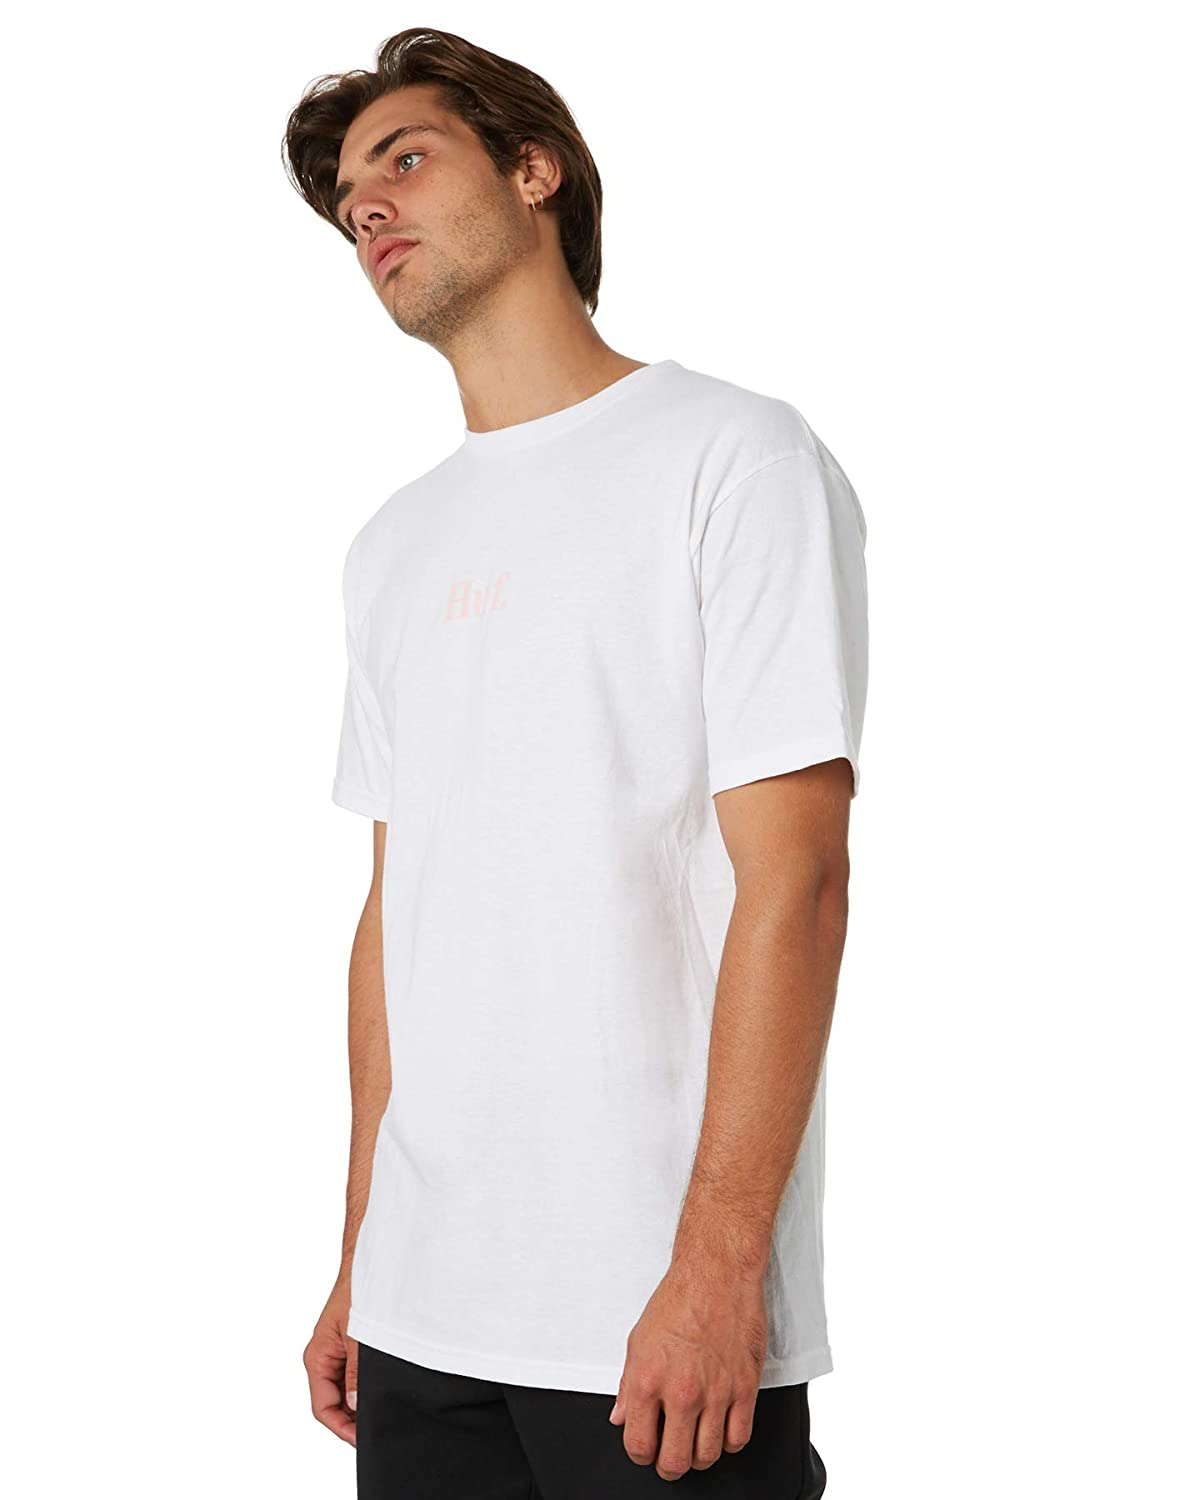 White HUF Worldwide Road to Ruin Short Sleeve Tee Mens Graphic Shirt